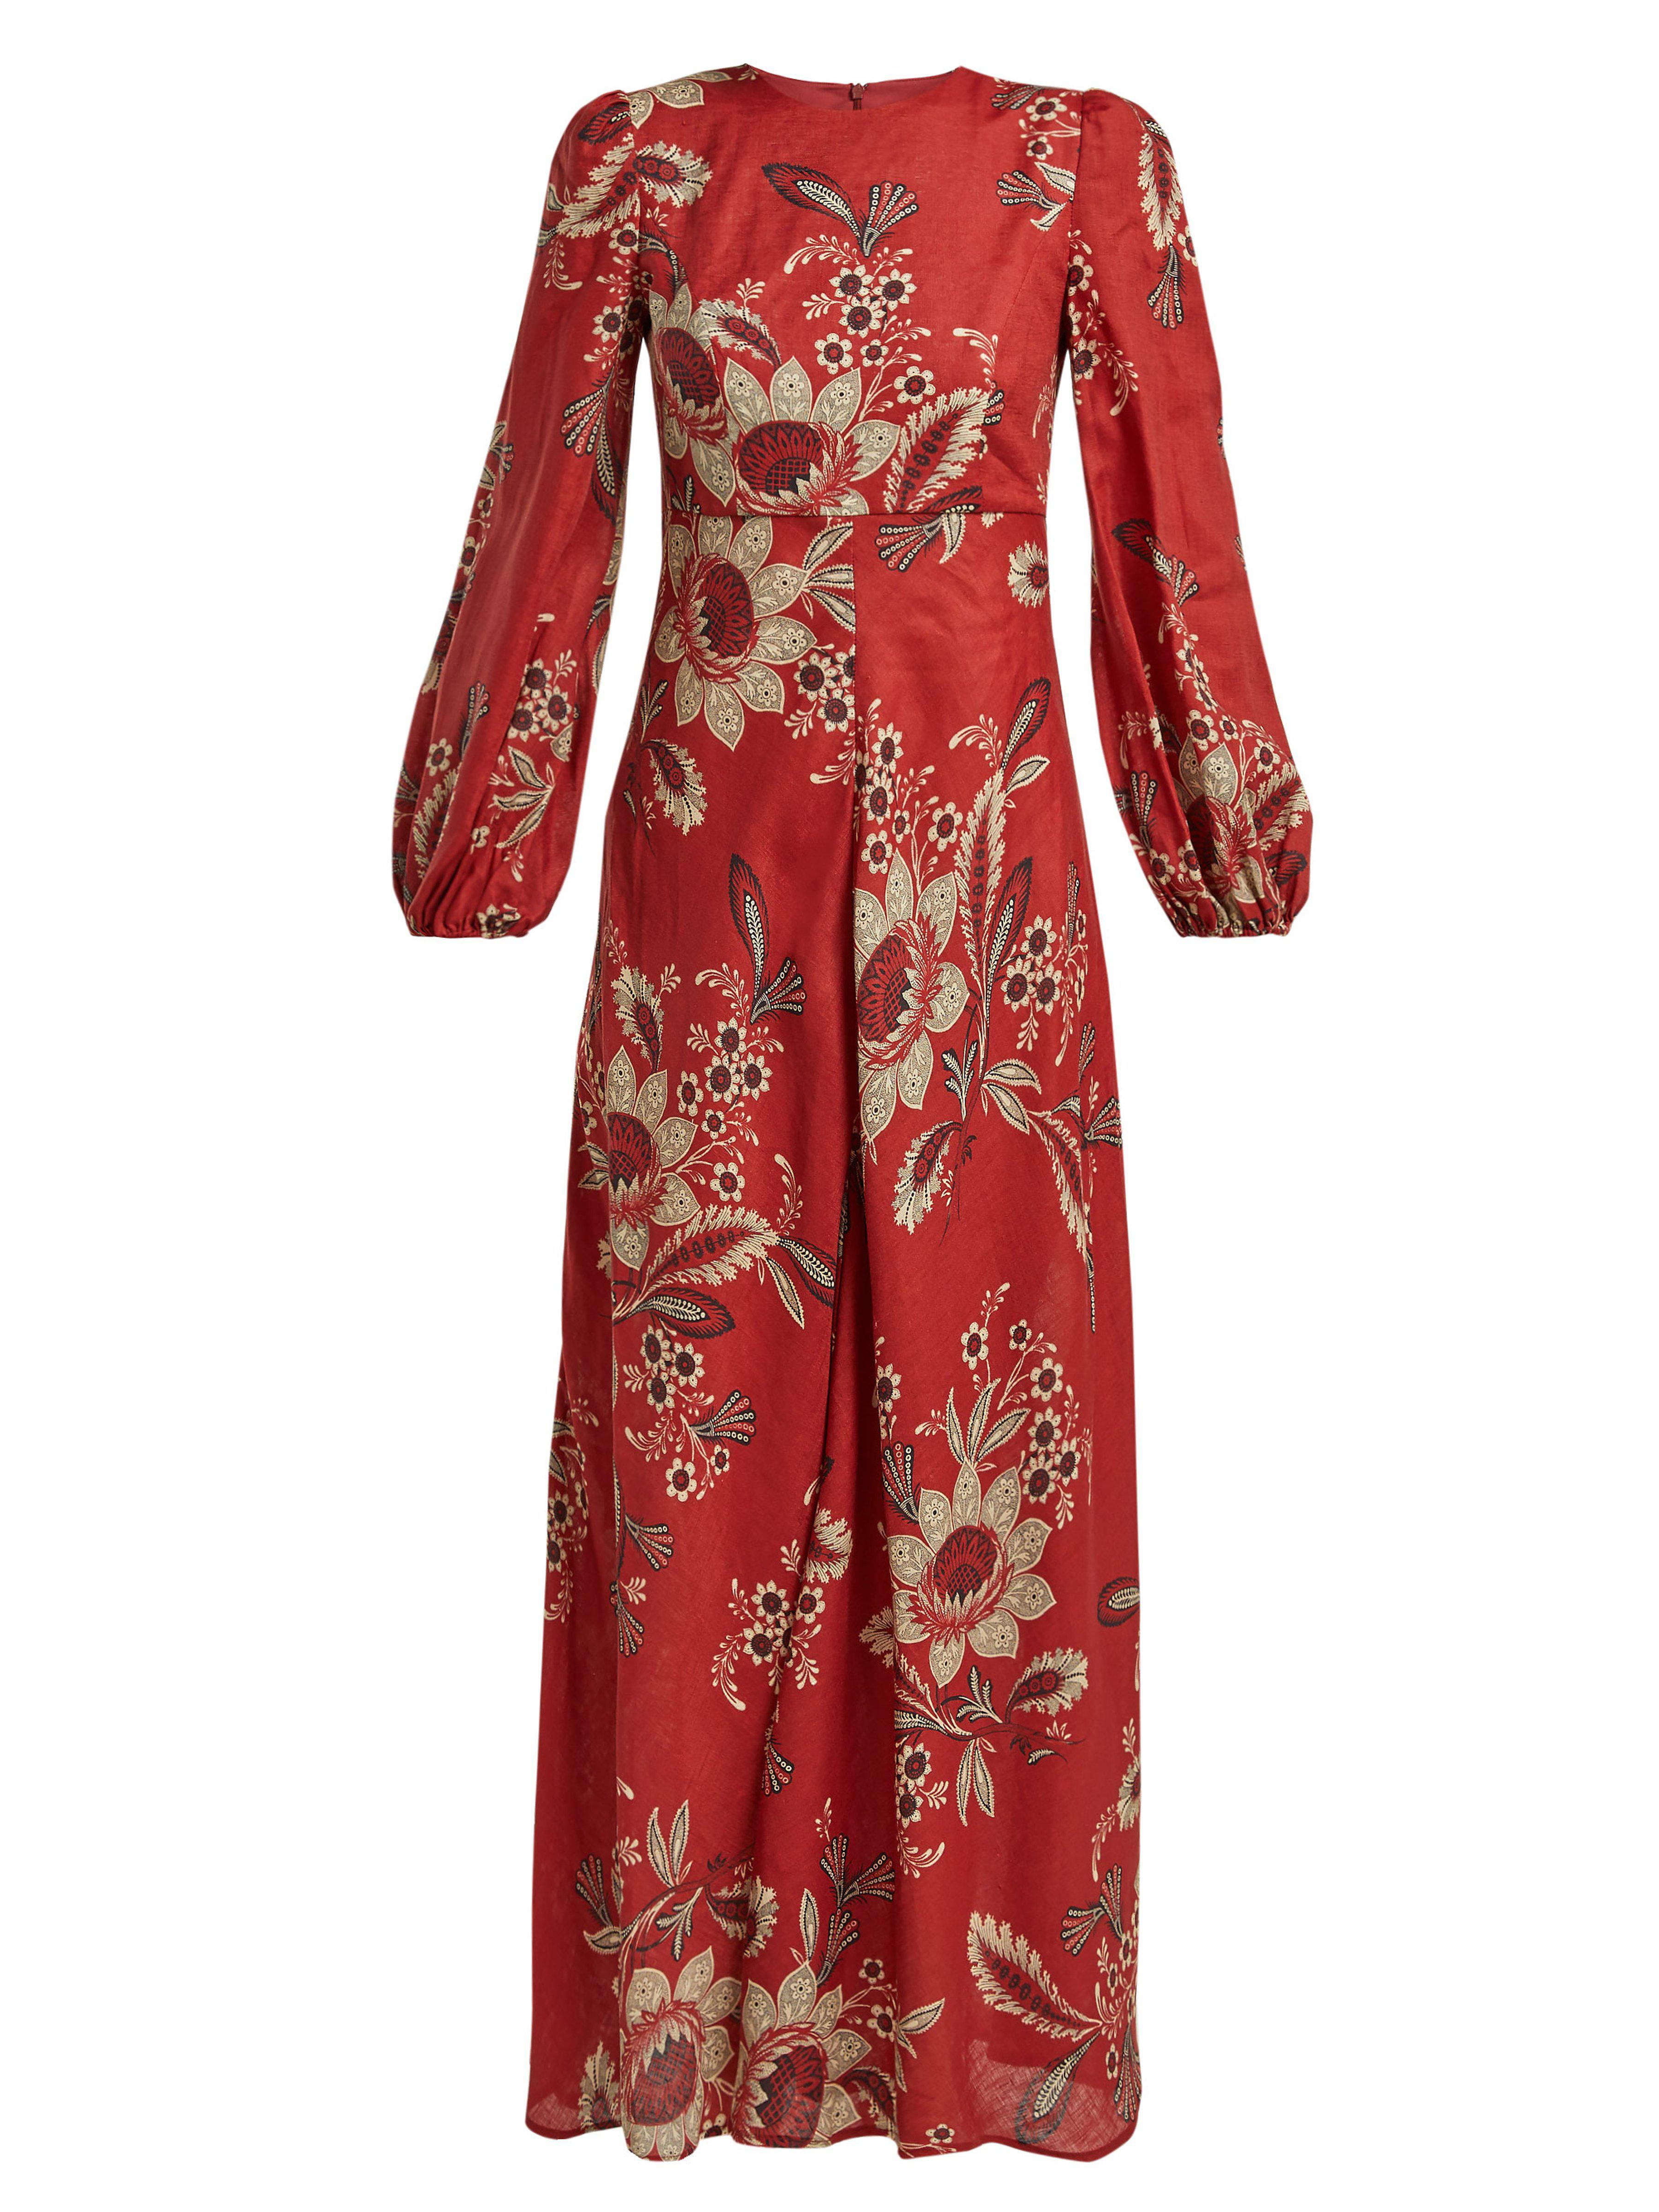 a76a2af91b4 Zimmermann Juno Rosa Batik Print Linen Dress in Red - Lyst